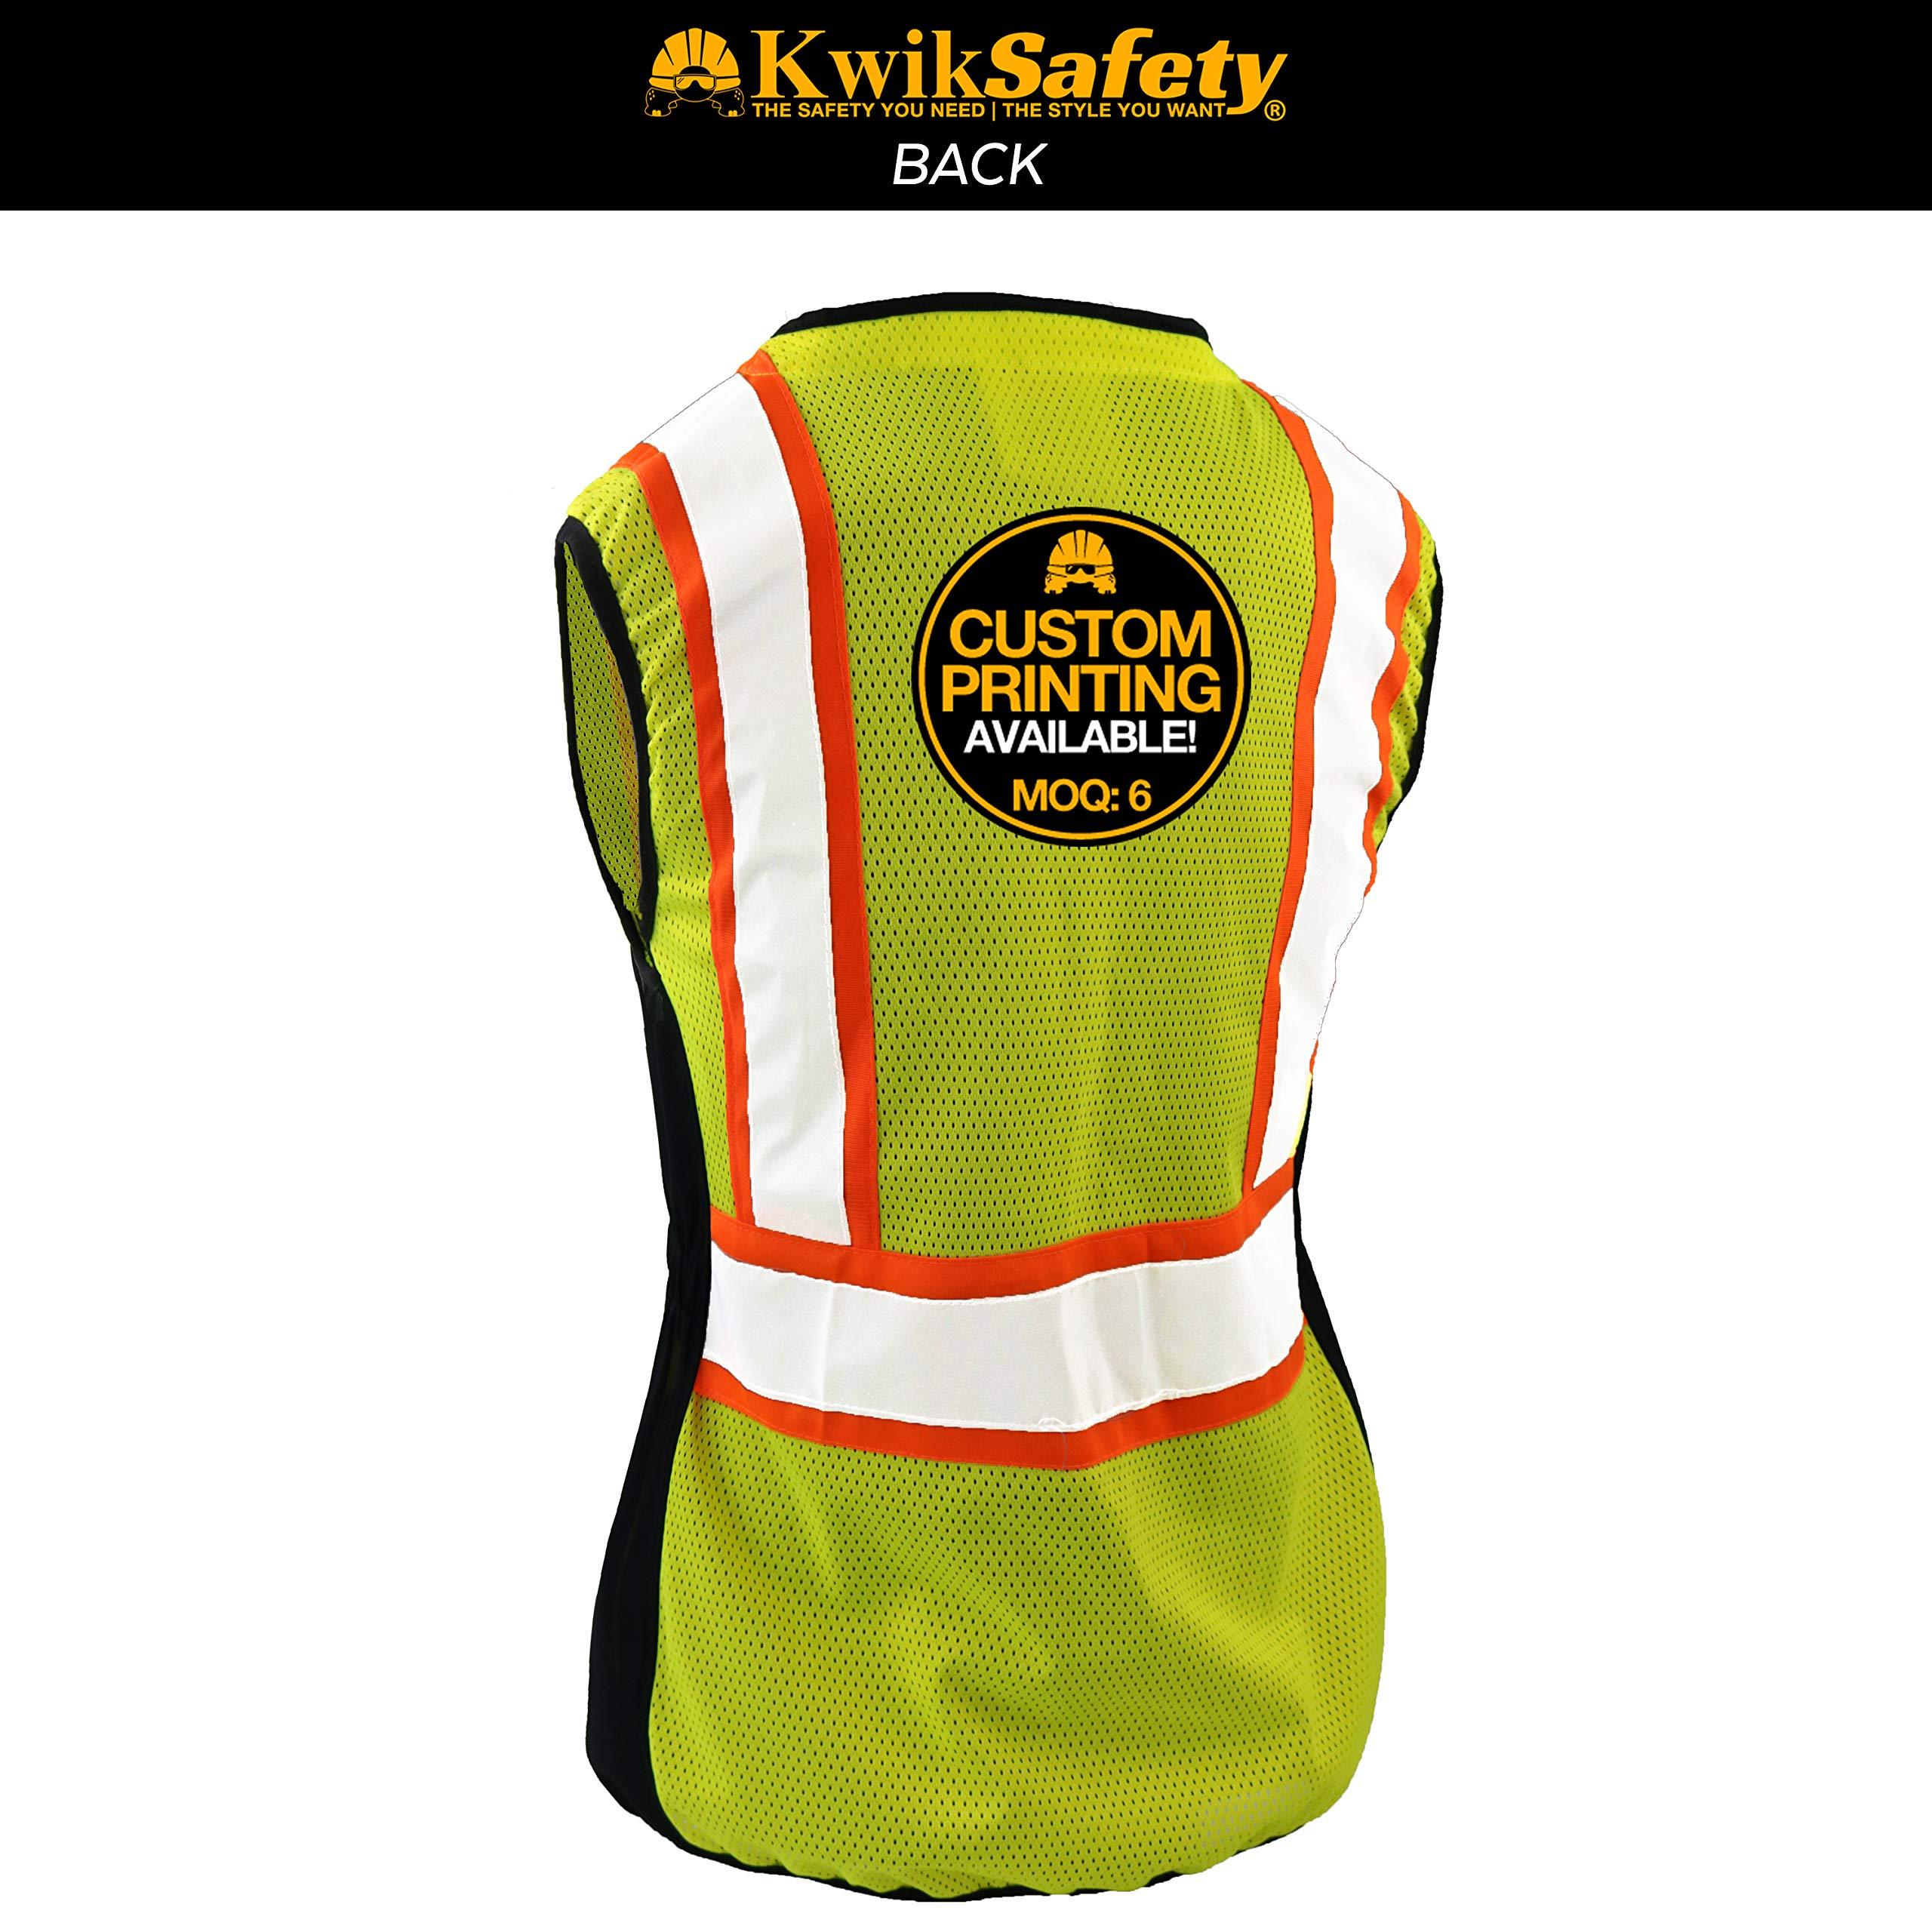 KwikSafety (Charlotte, NC) FIRST LADY Safety Vest for Women | Class 2 ANSI OSHA PPE | High Visibility Heavy Duty Mesh Pockets Zipper | Hi-Vis Construction Work Hi-Vis Surveyor Female | Yellow Large by KwikSafety (Image #1)